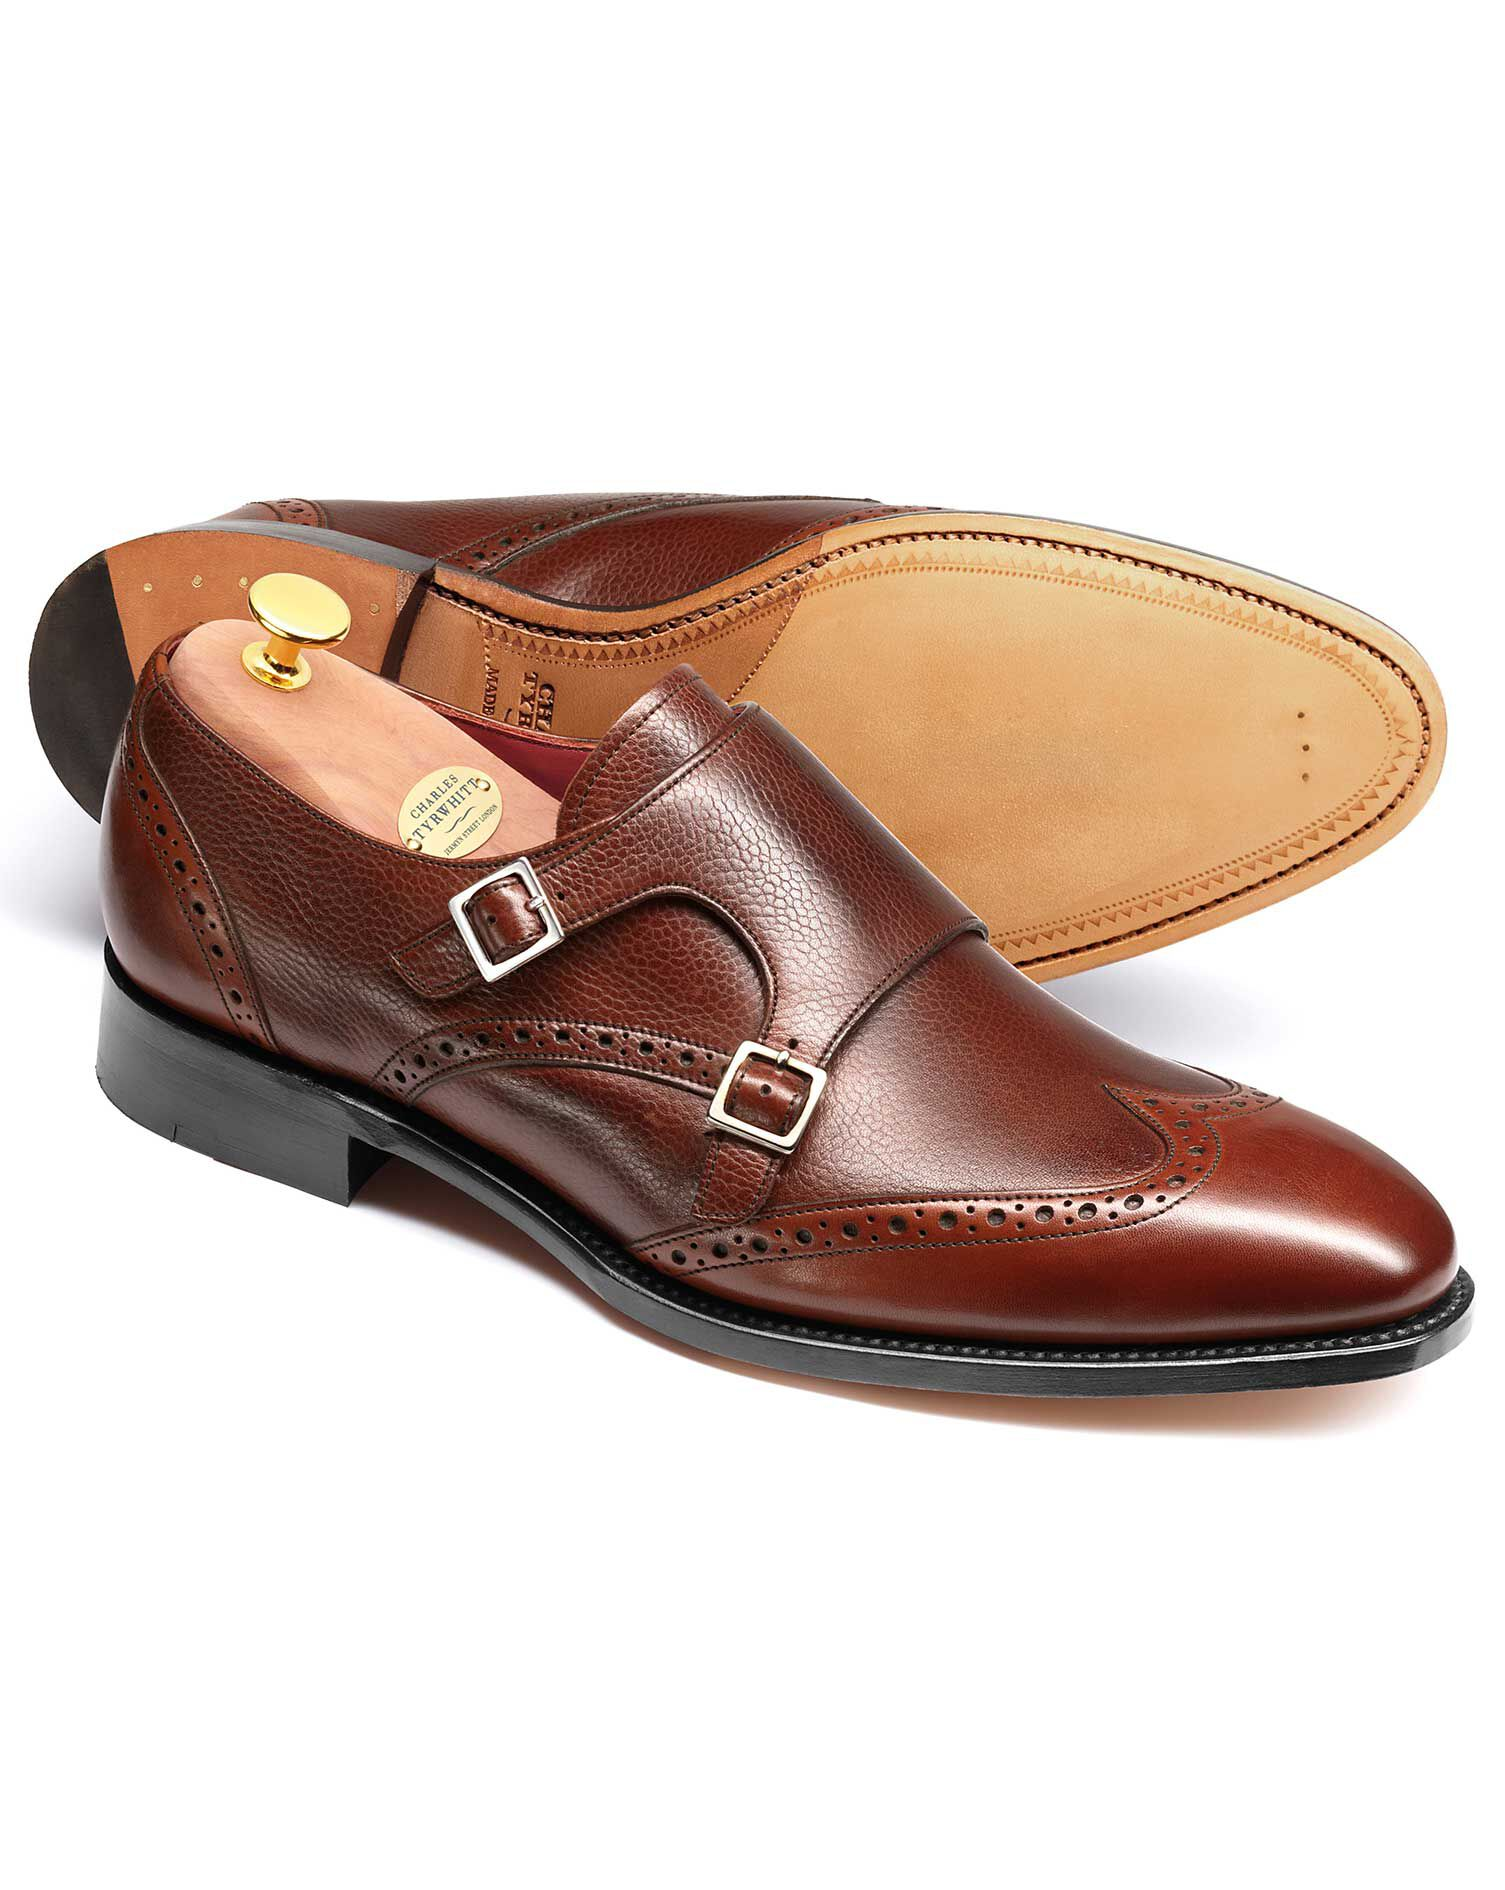 Brown Edmonton Calf Leather Toe Cap Brogue Monk Shoes Size 6 by Charles Tyrwhitt